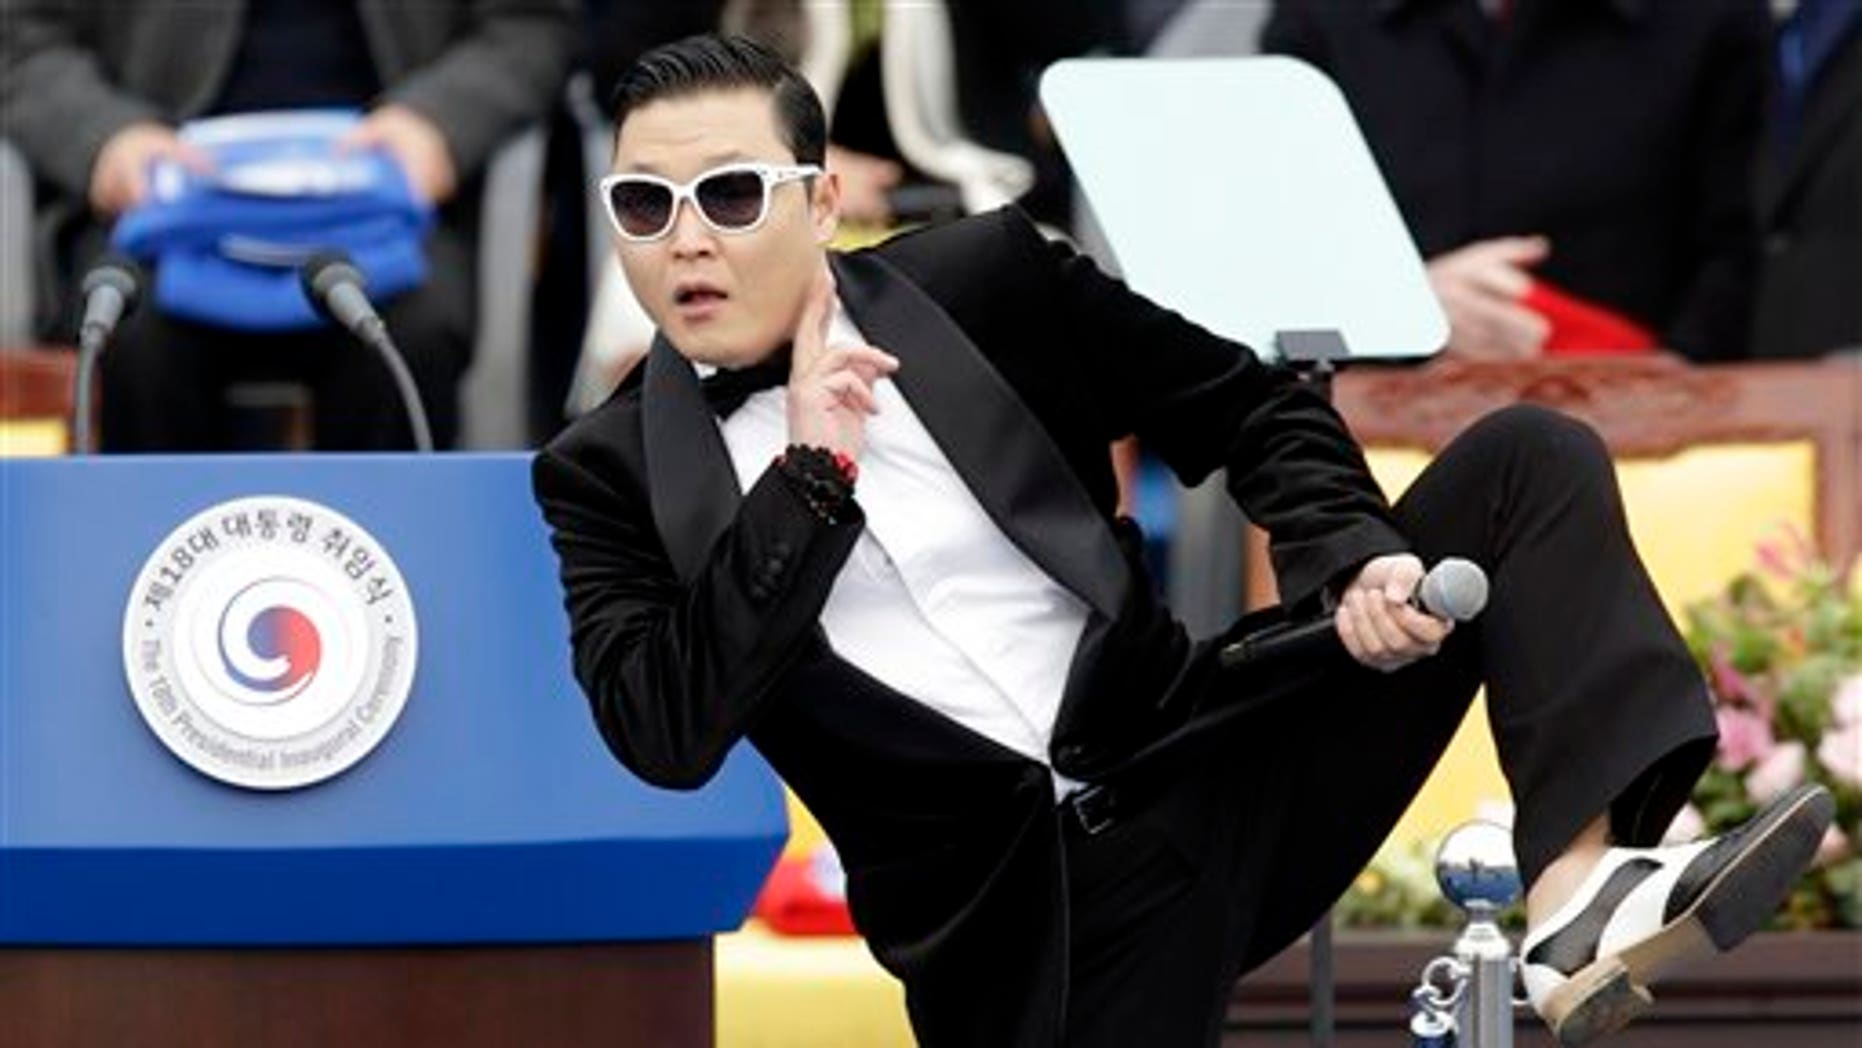 South Korean rapper PSY performs before President Park Geun-hye's presidential inauguration ceremony.